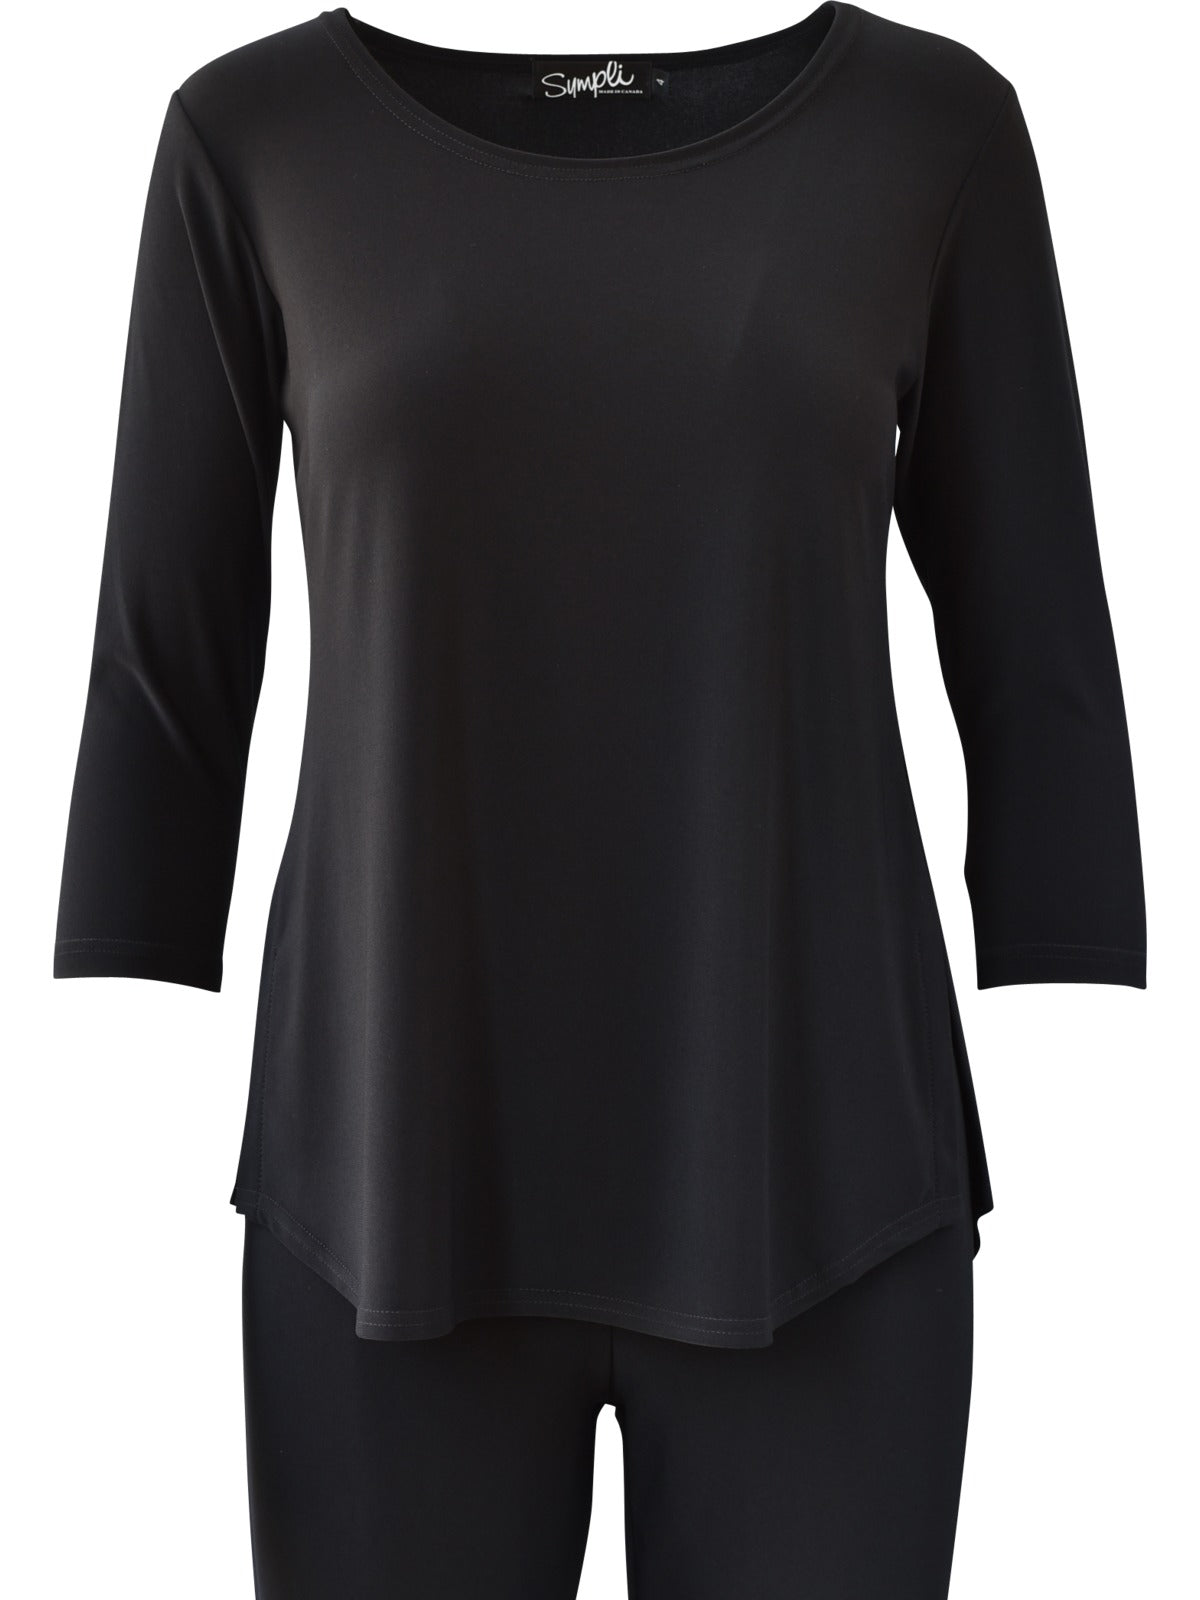 Sympli Go To Classic T Relax 3/4 Sleeve - Black - Statement Boutique